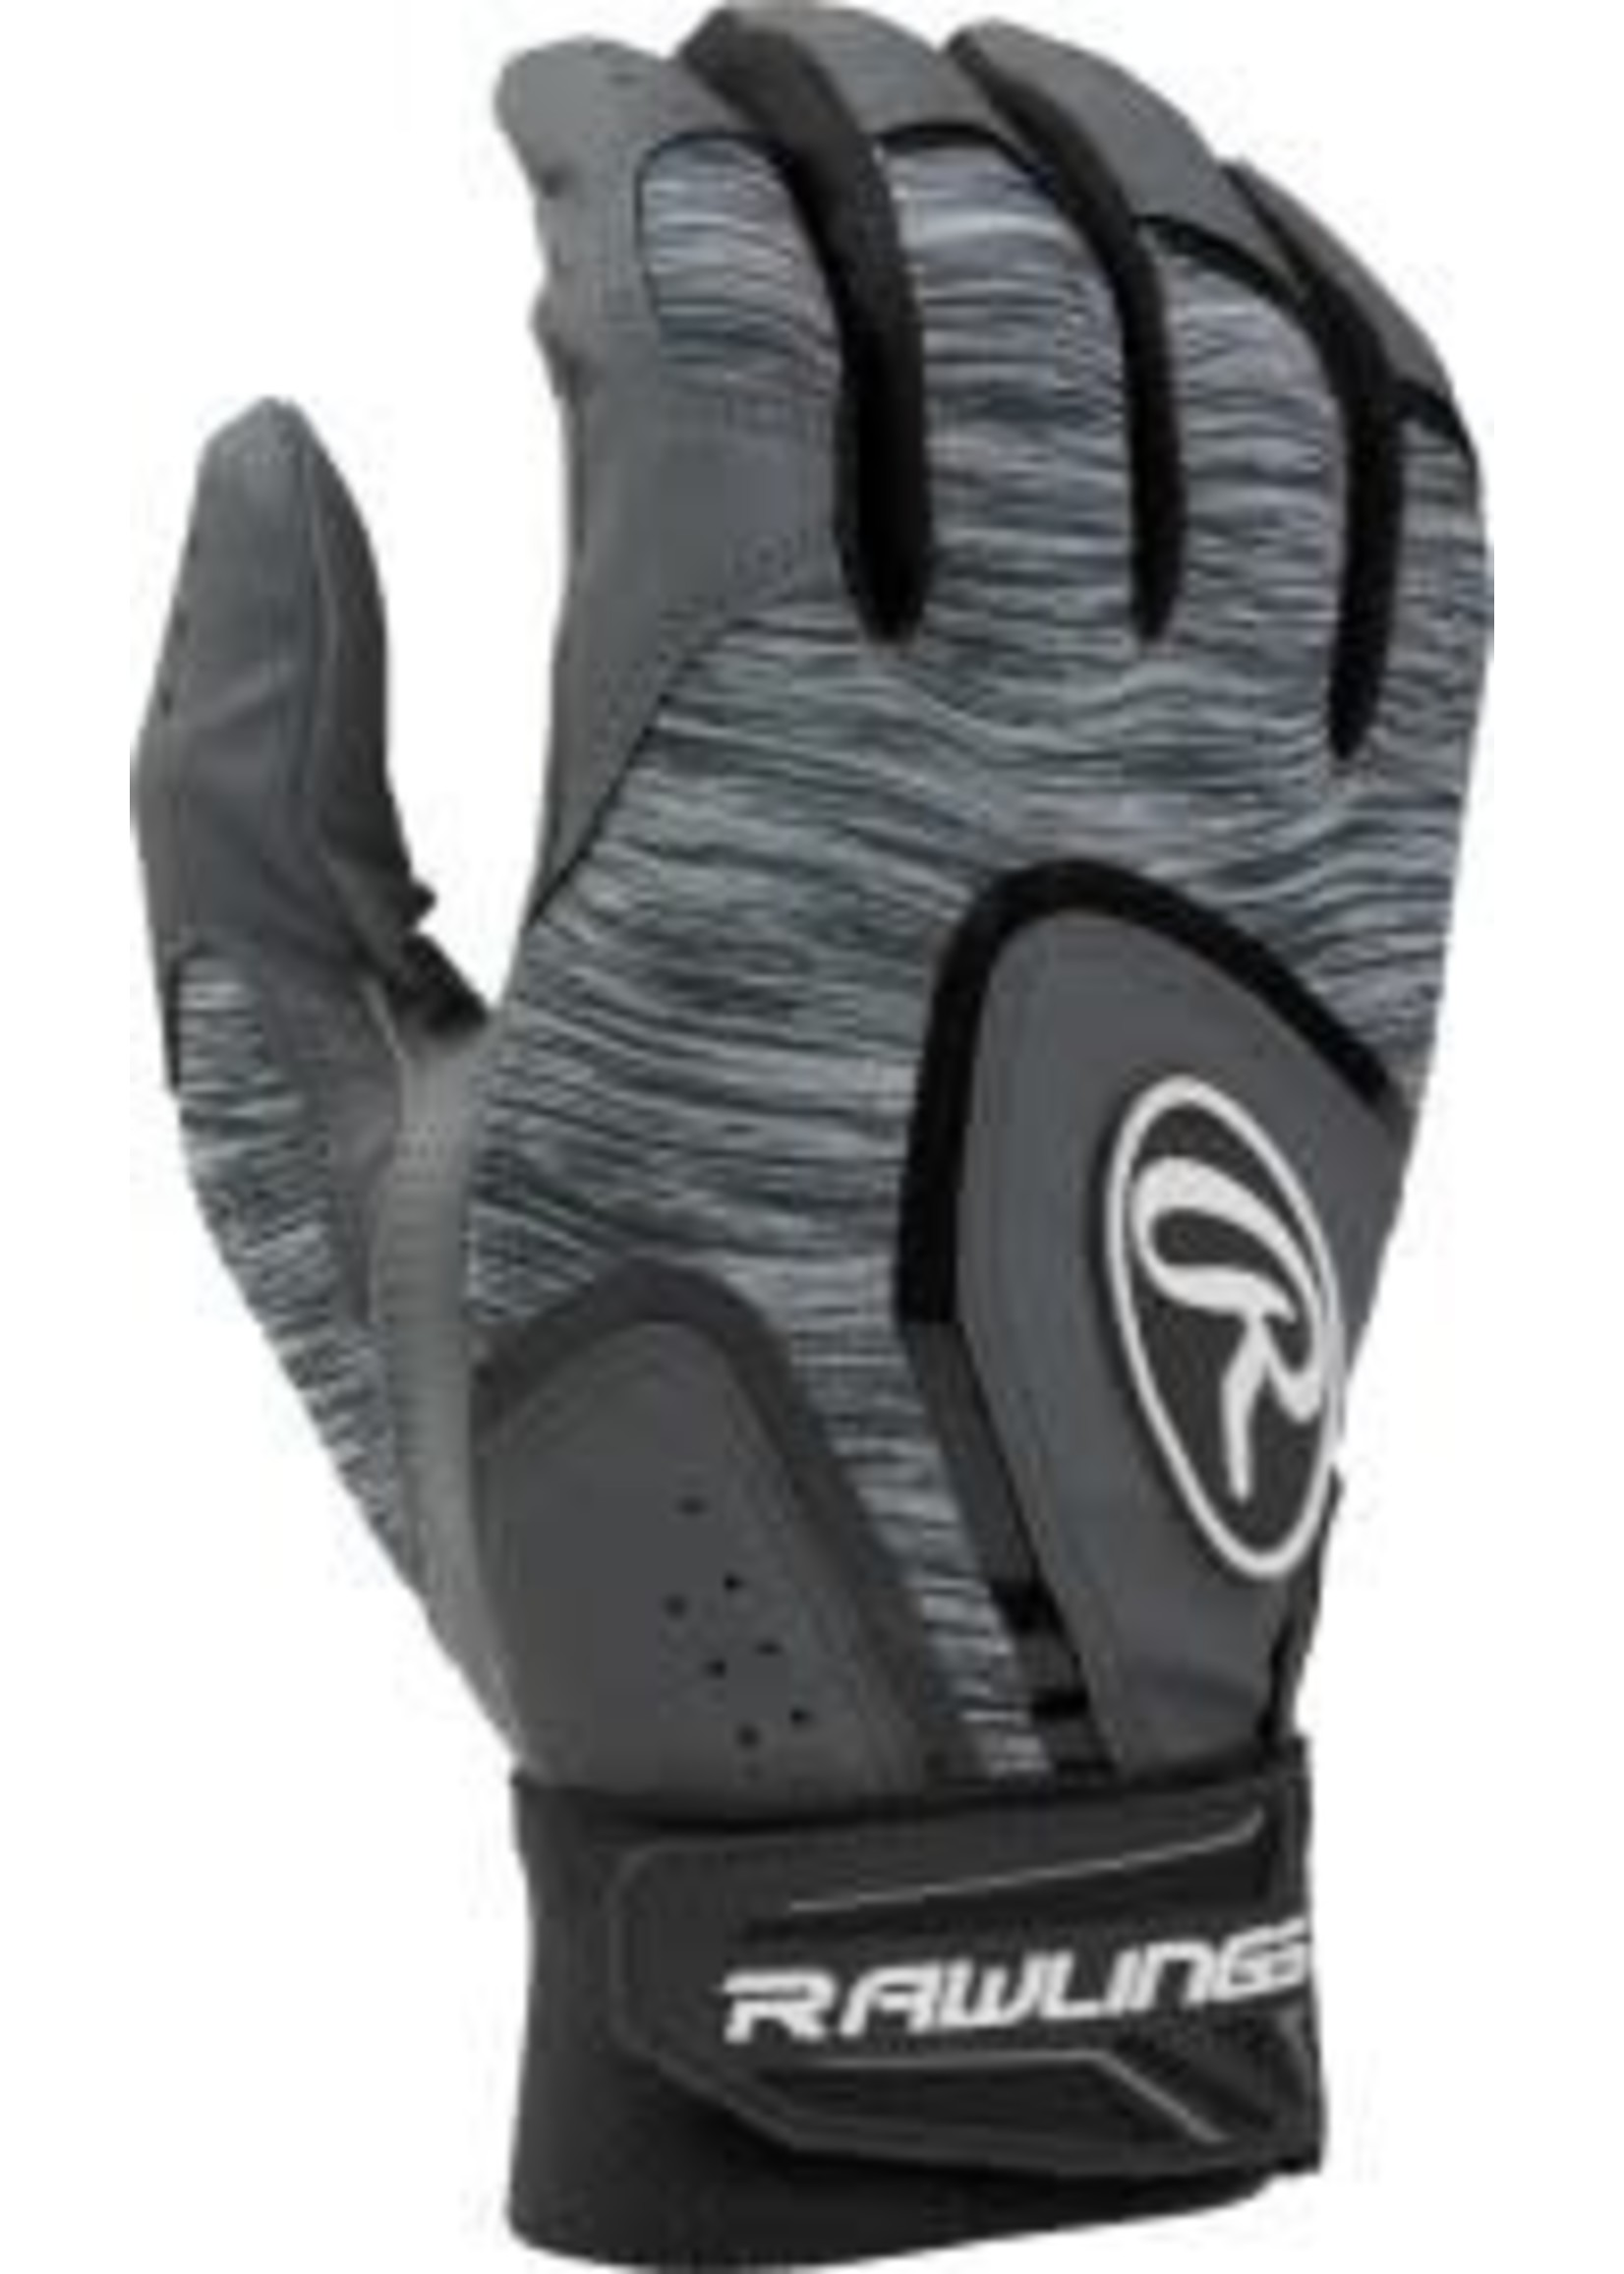 Rawlings RAWLINGS BATTING GLOVES 5150 YTH